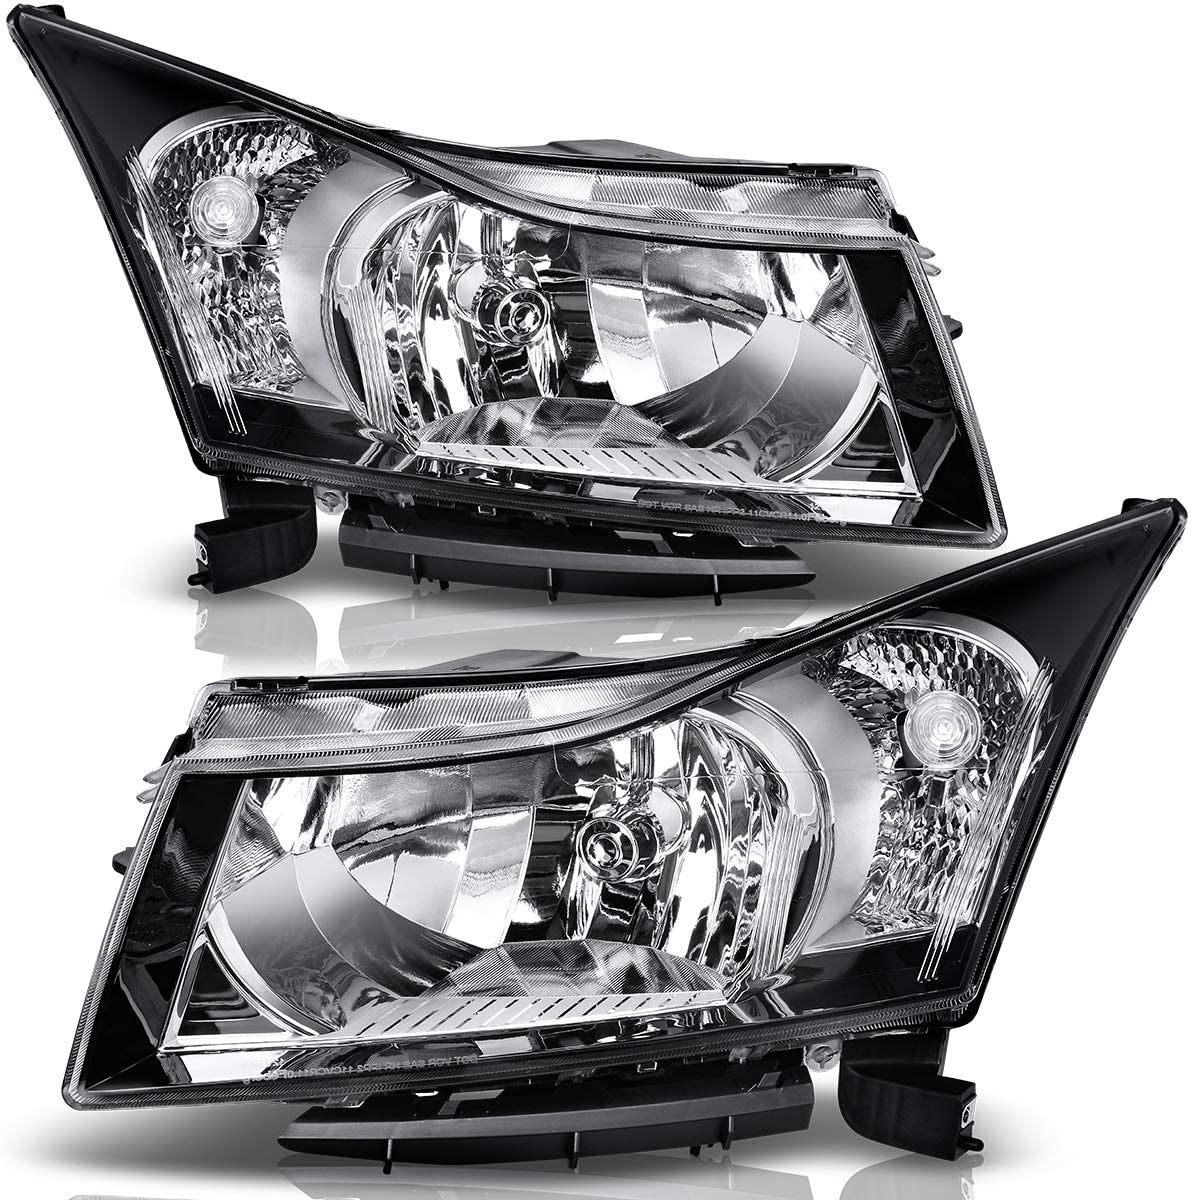 DWVO Headlight Assembly Compatible with 2011-2015 Chevy Cruze,Black Housing Clear Lens